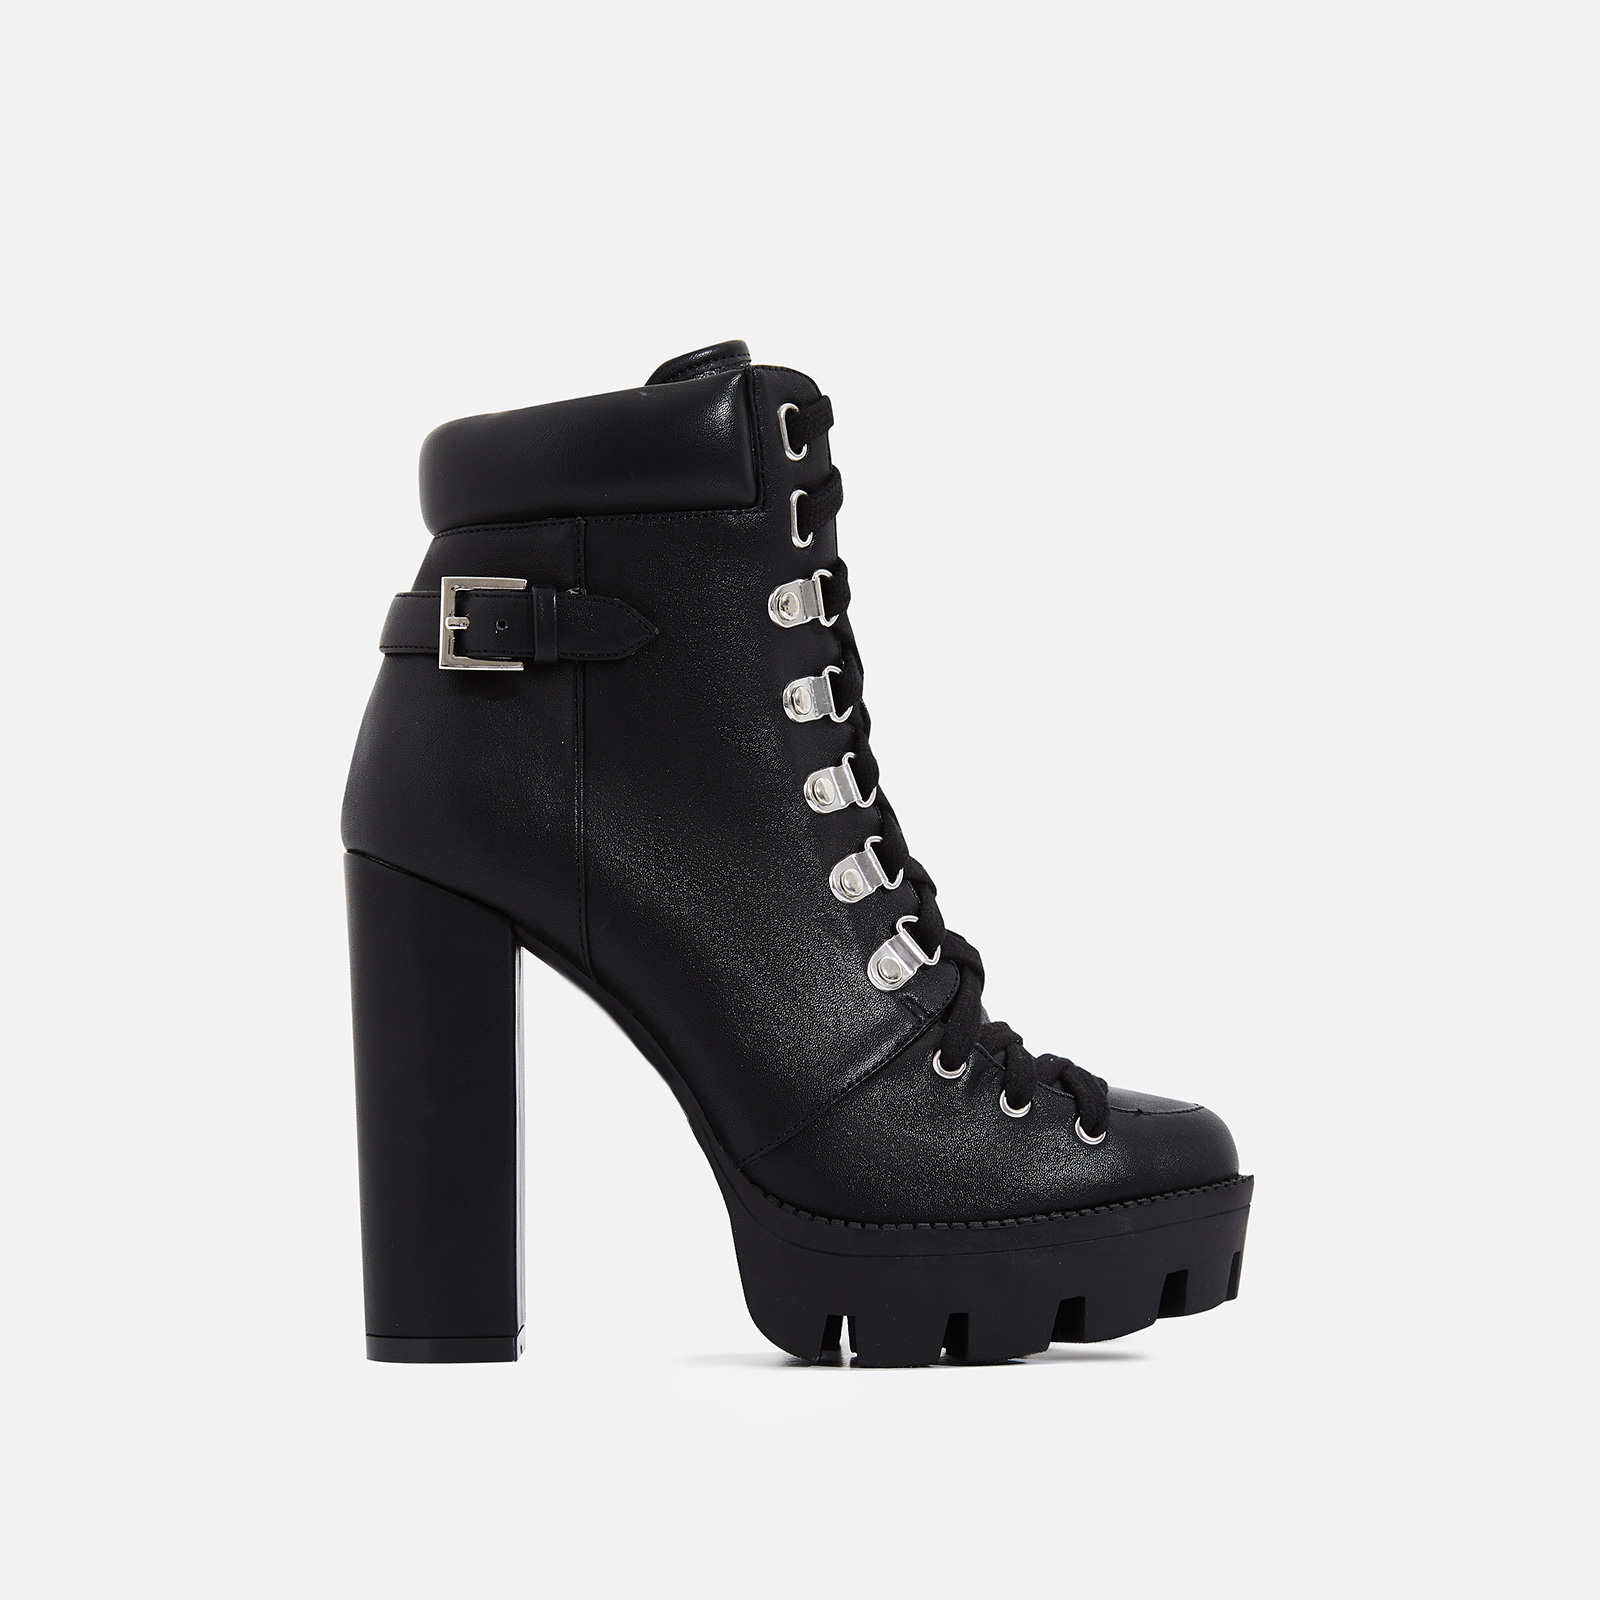 Veera Platform Ankle Biker Boot In Black Faux Leather